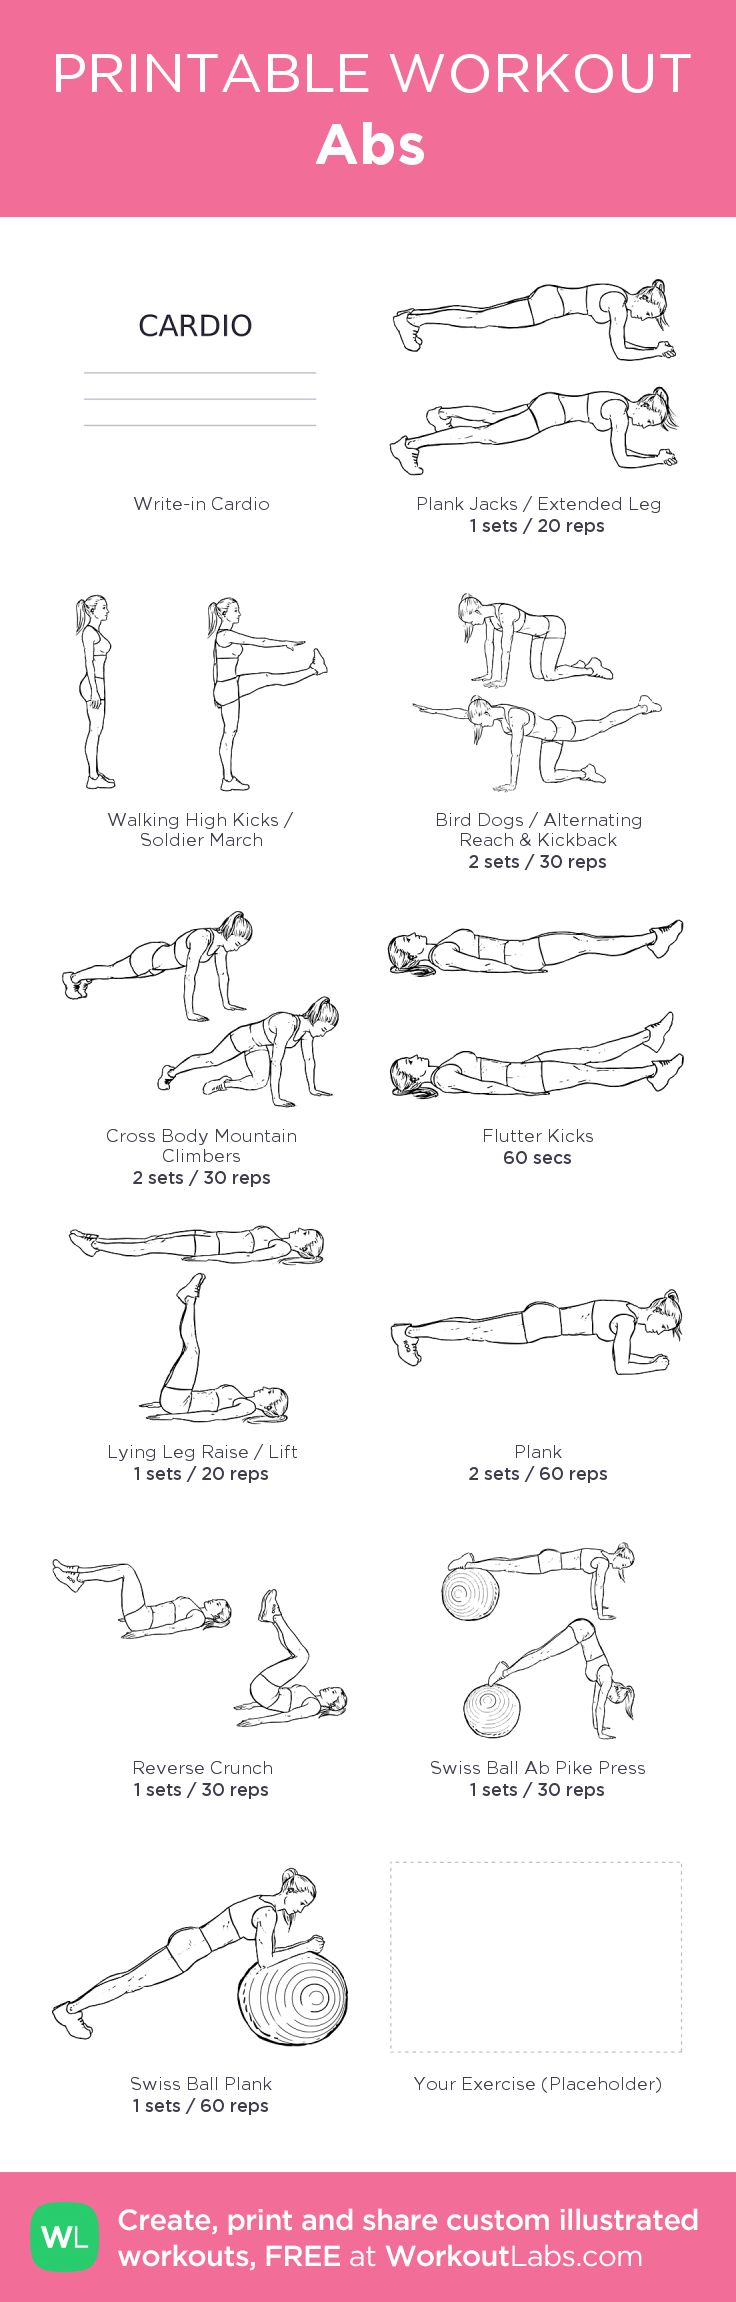 Ab Workout | Posted by: CustomWeightLossProgram.com